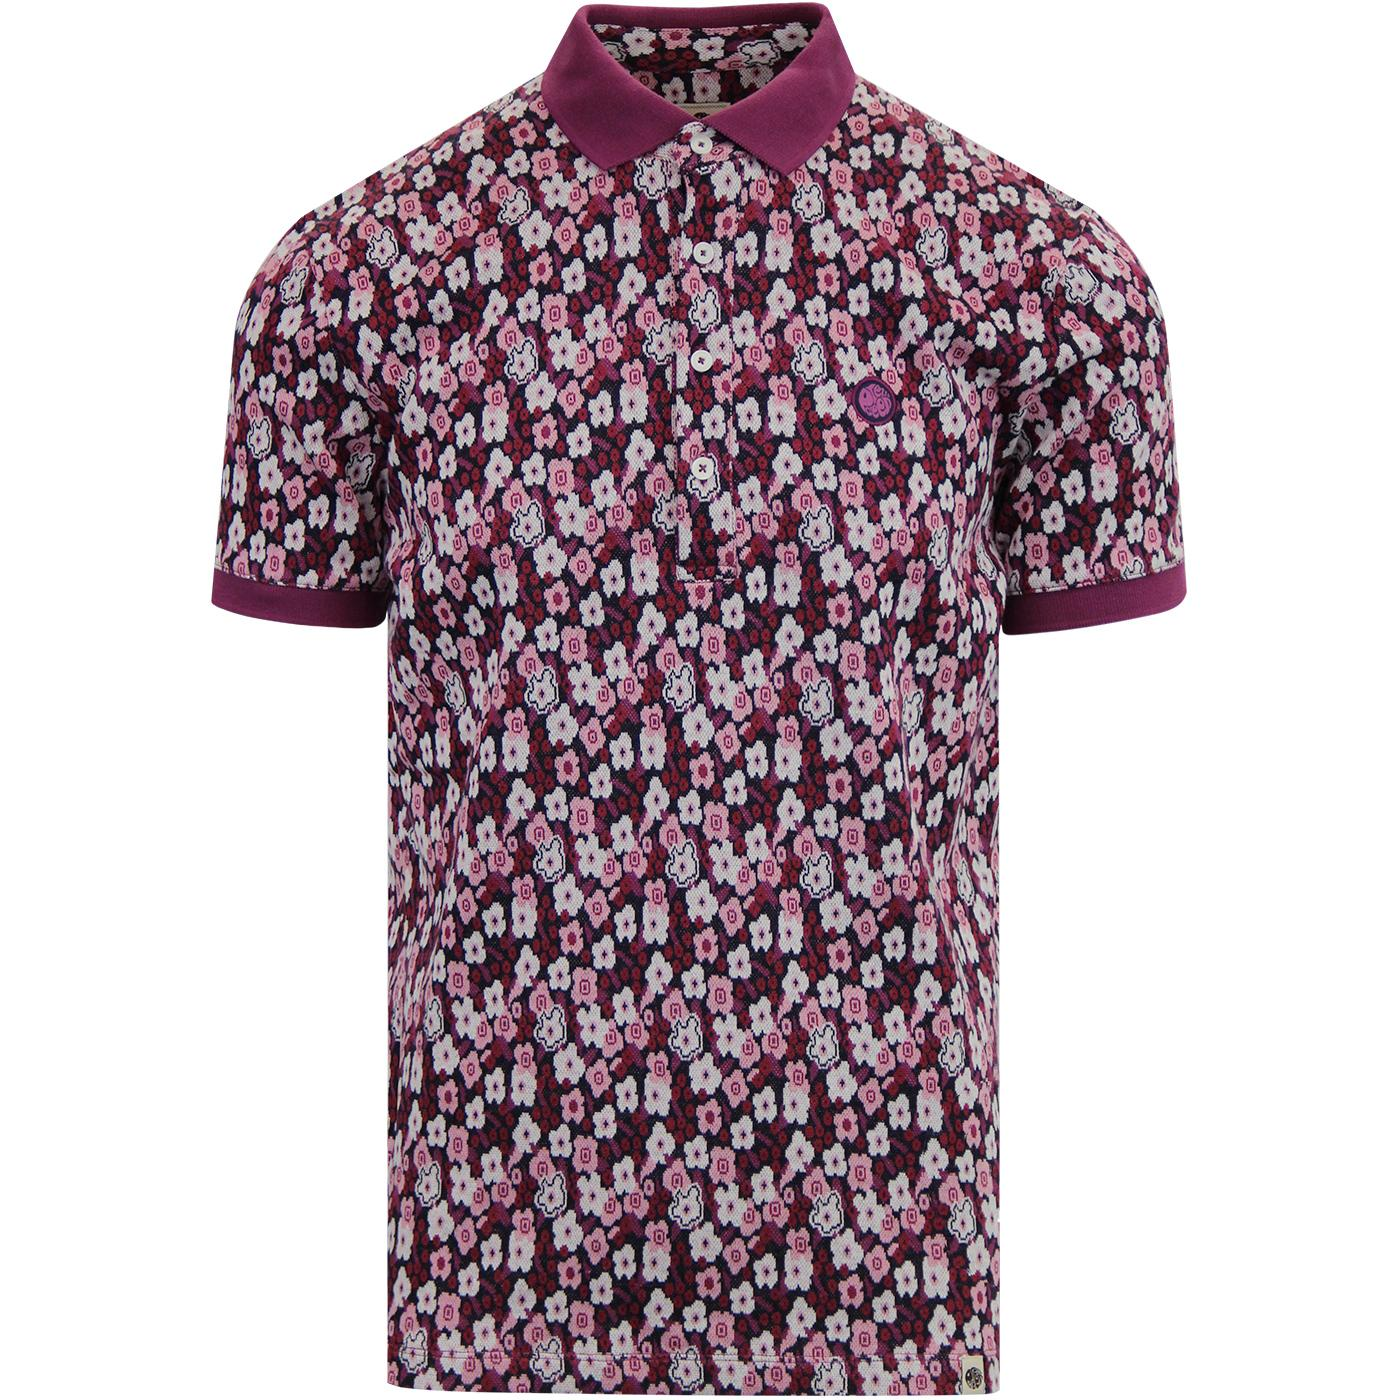 PRETTY GREEN Retro Mod Jacquard Floral Polo Shirt